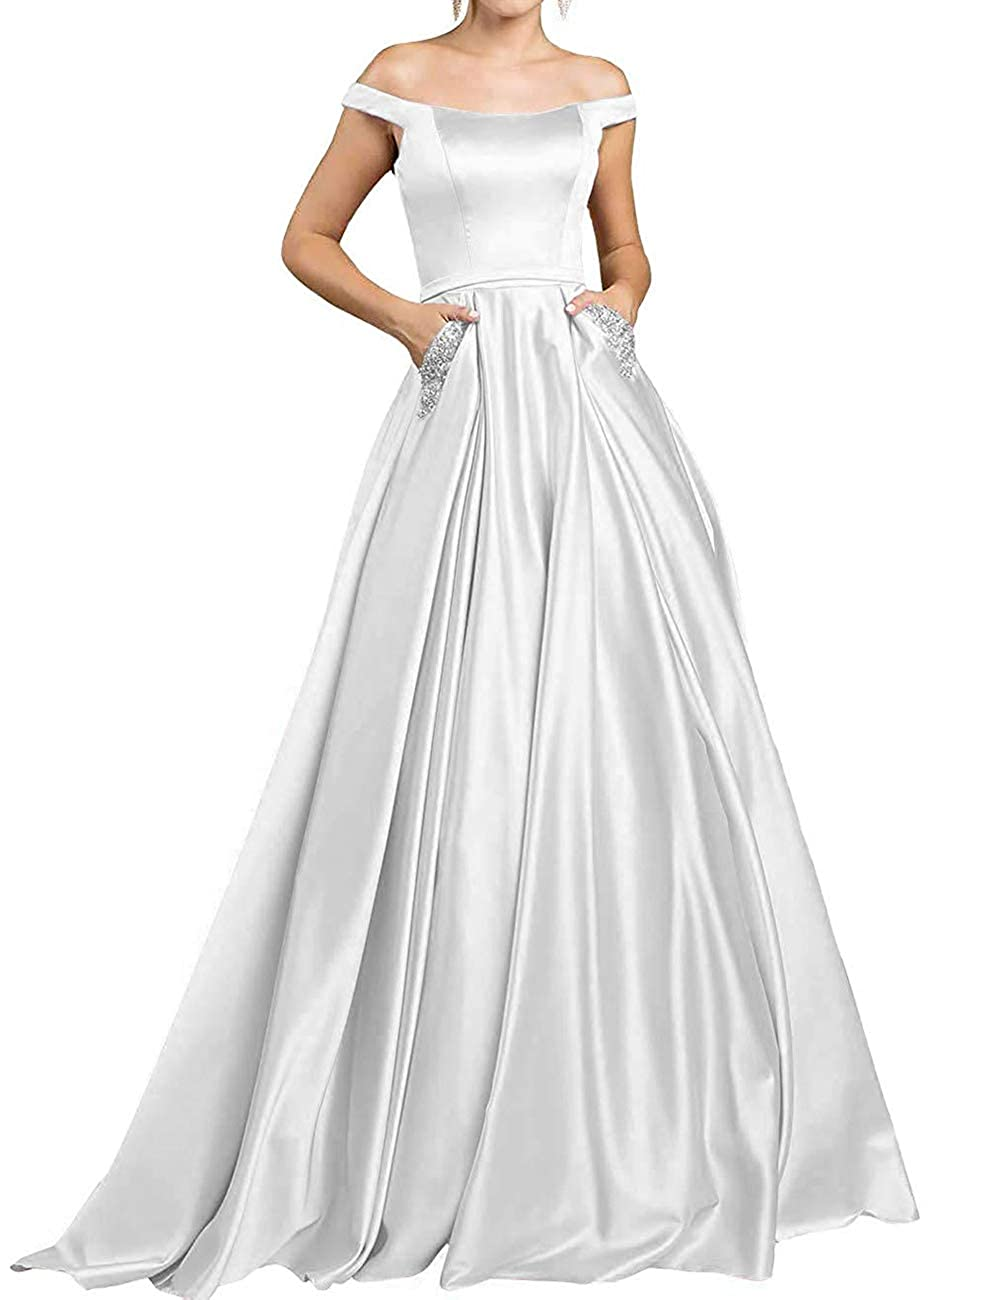 Ivory JAEDEN Prom Dresses Long Formal Evening Gowns with Pocket Off The Shoulder Prom Dress A line Evening Dresses